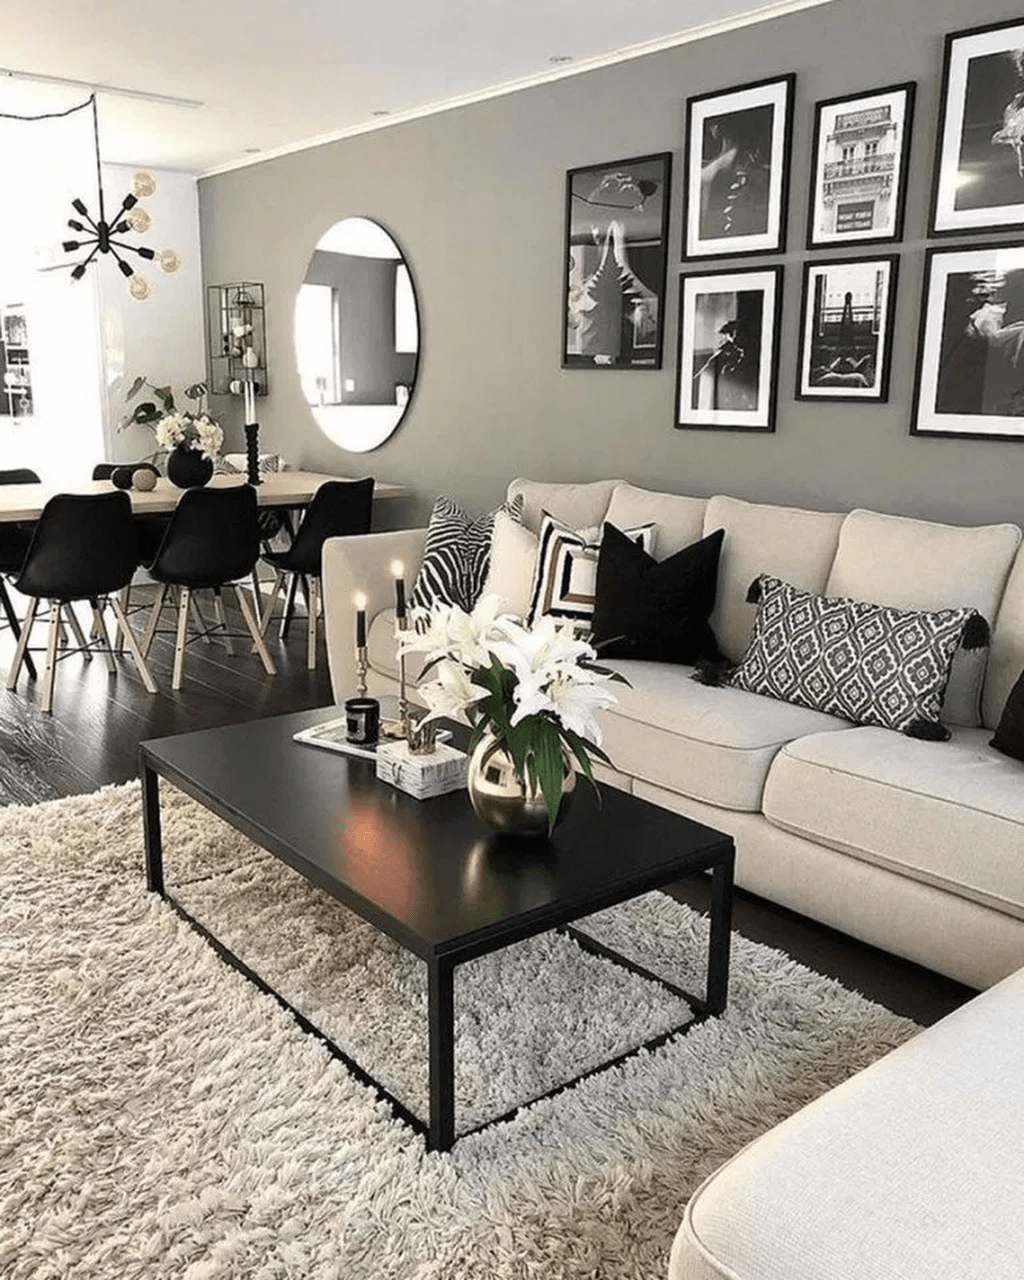 37 stunning neutral decor ideas for your living room on cozy apartment living room decorating ideas the easy way to look at your living room id=88692